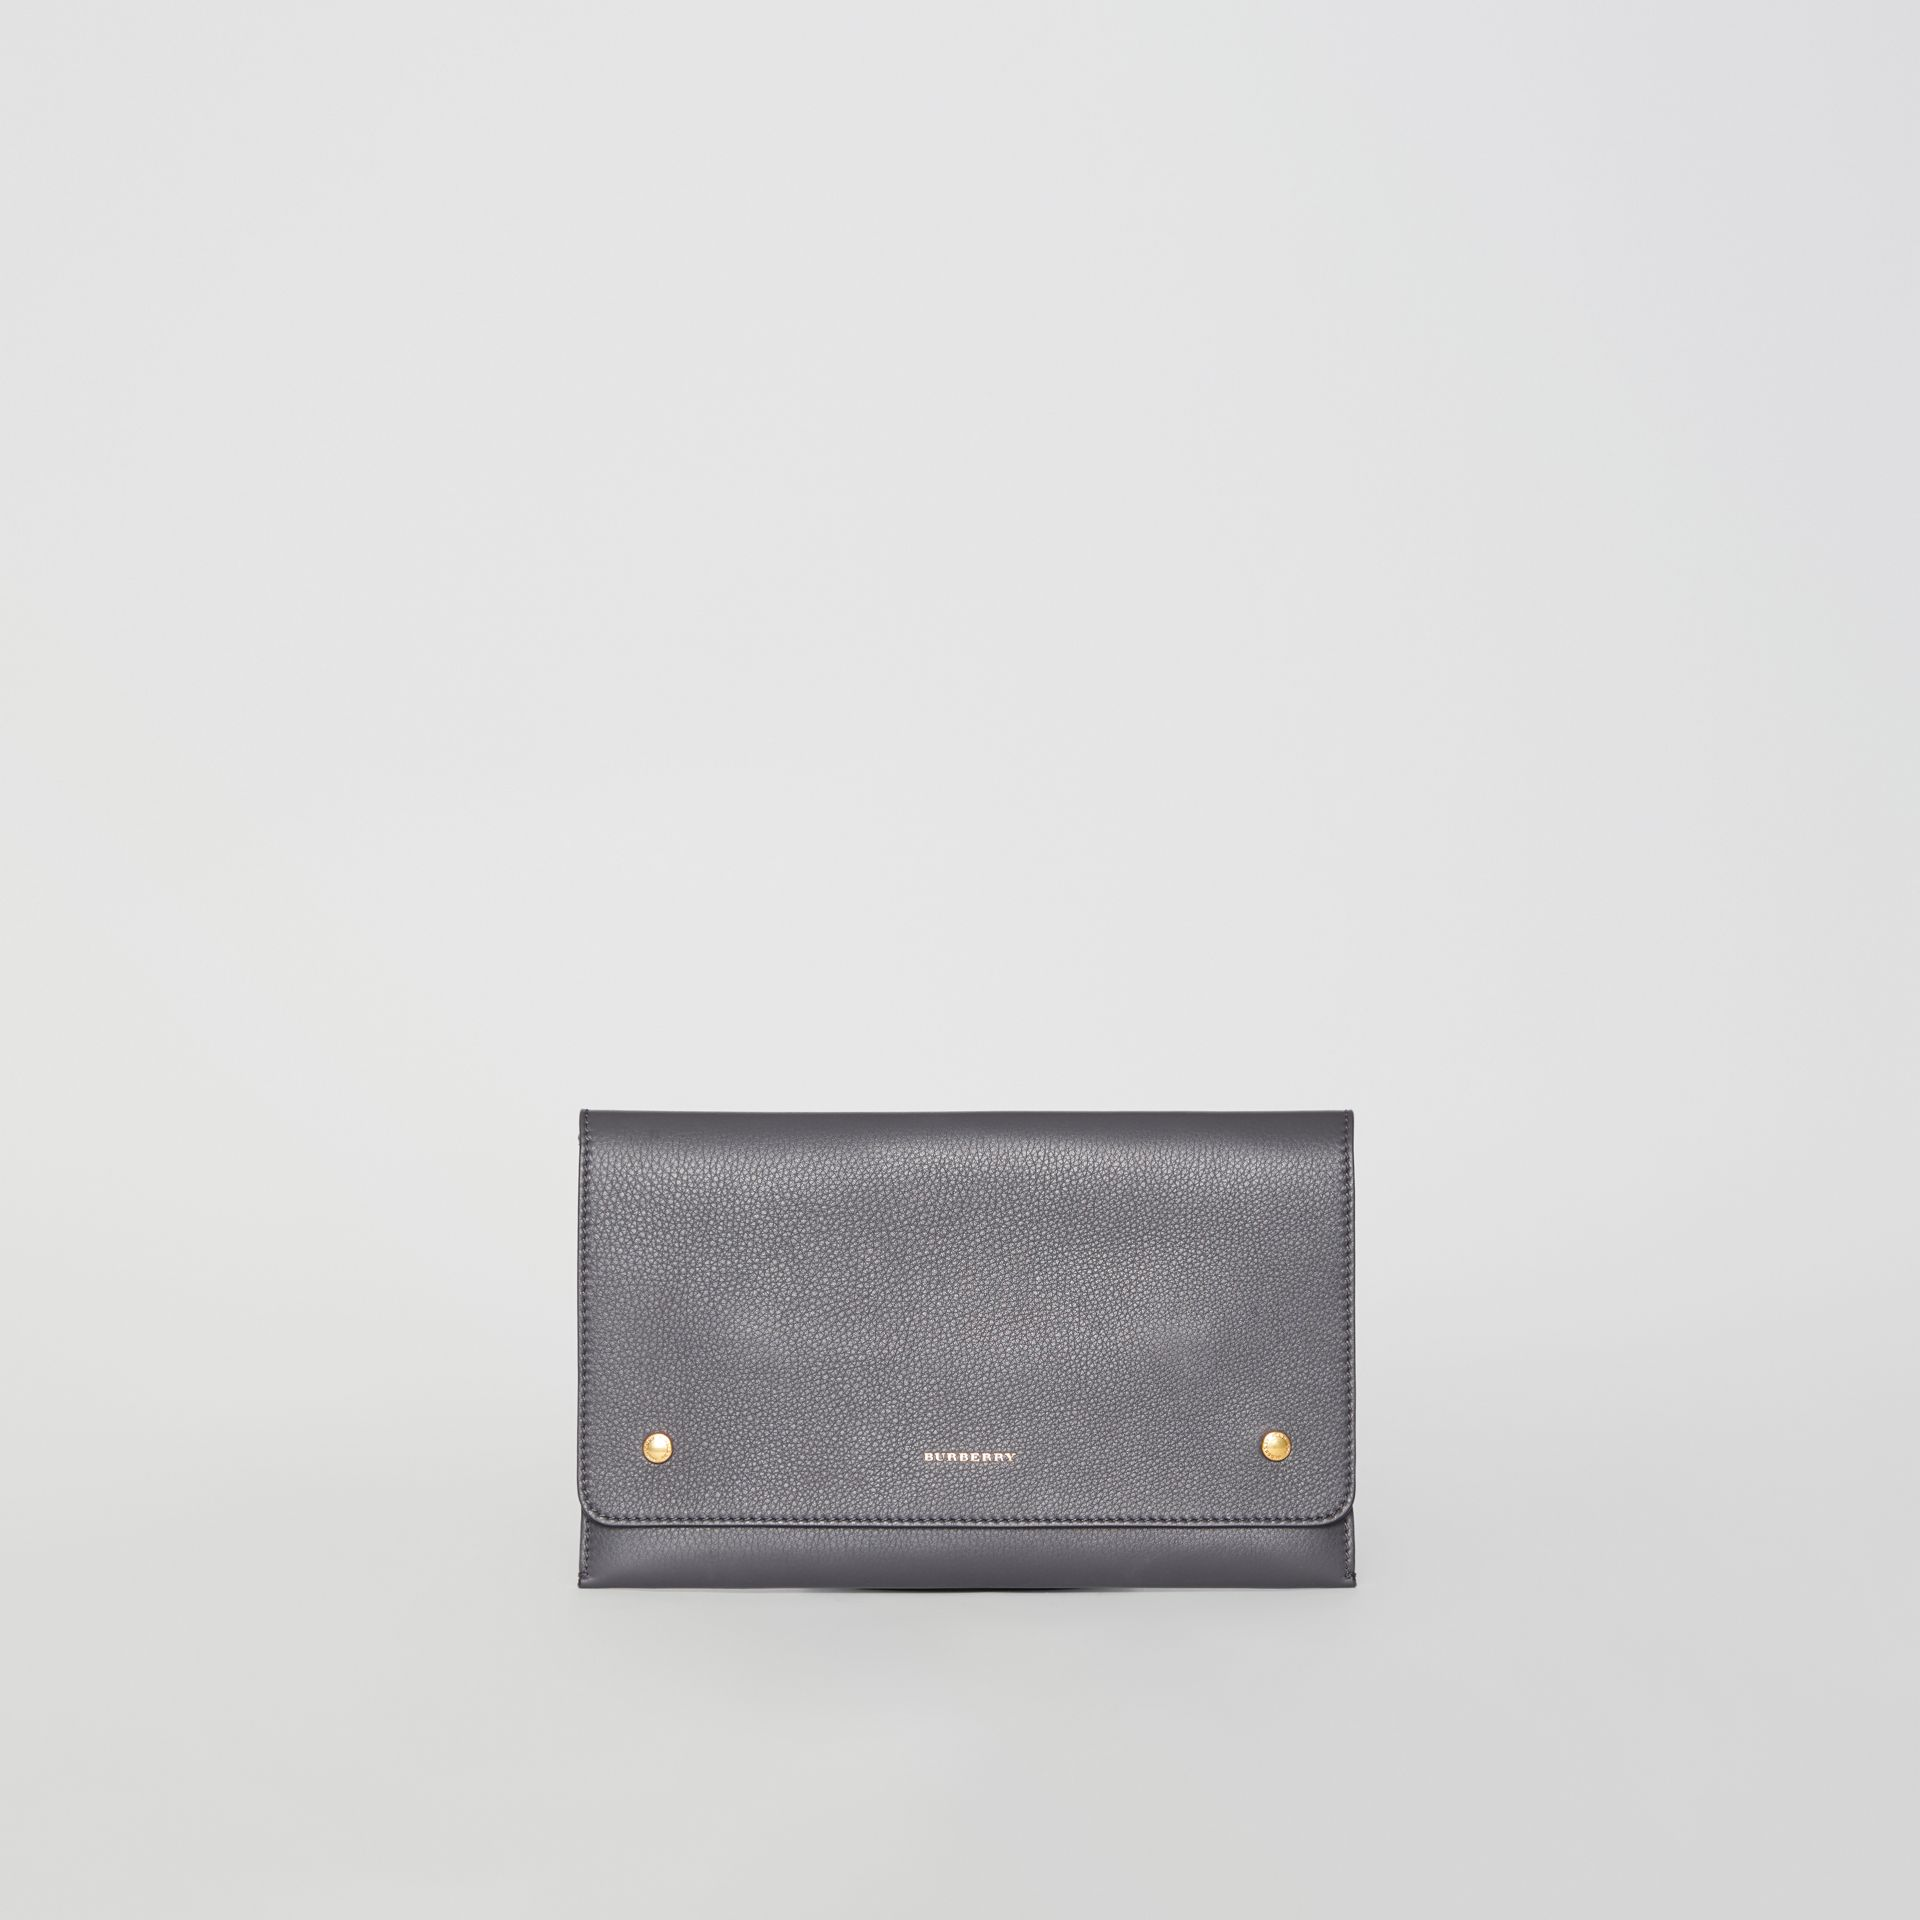 Two-tone Leather Wristlet Clutch in Charcoal Grey - Women | Burberry - gallery image 0